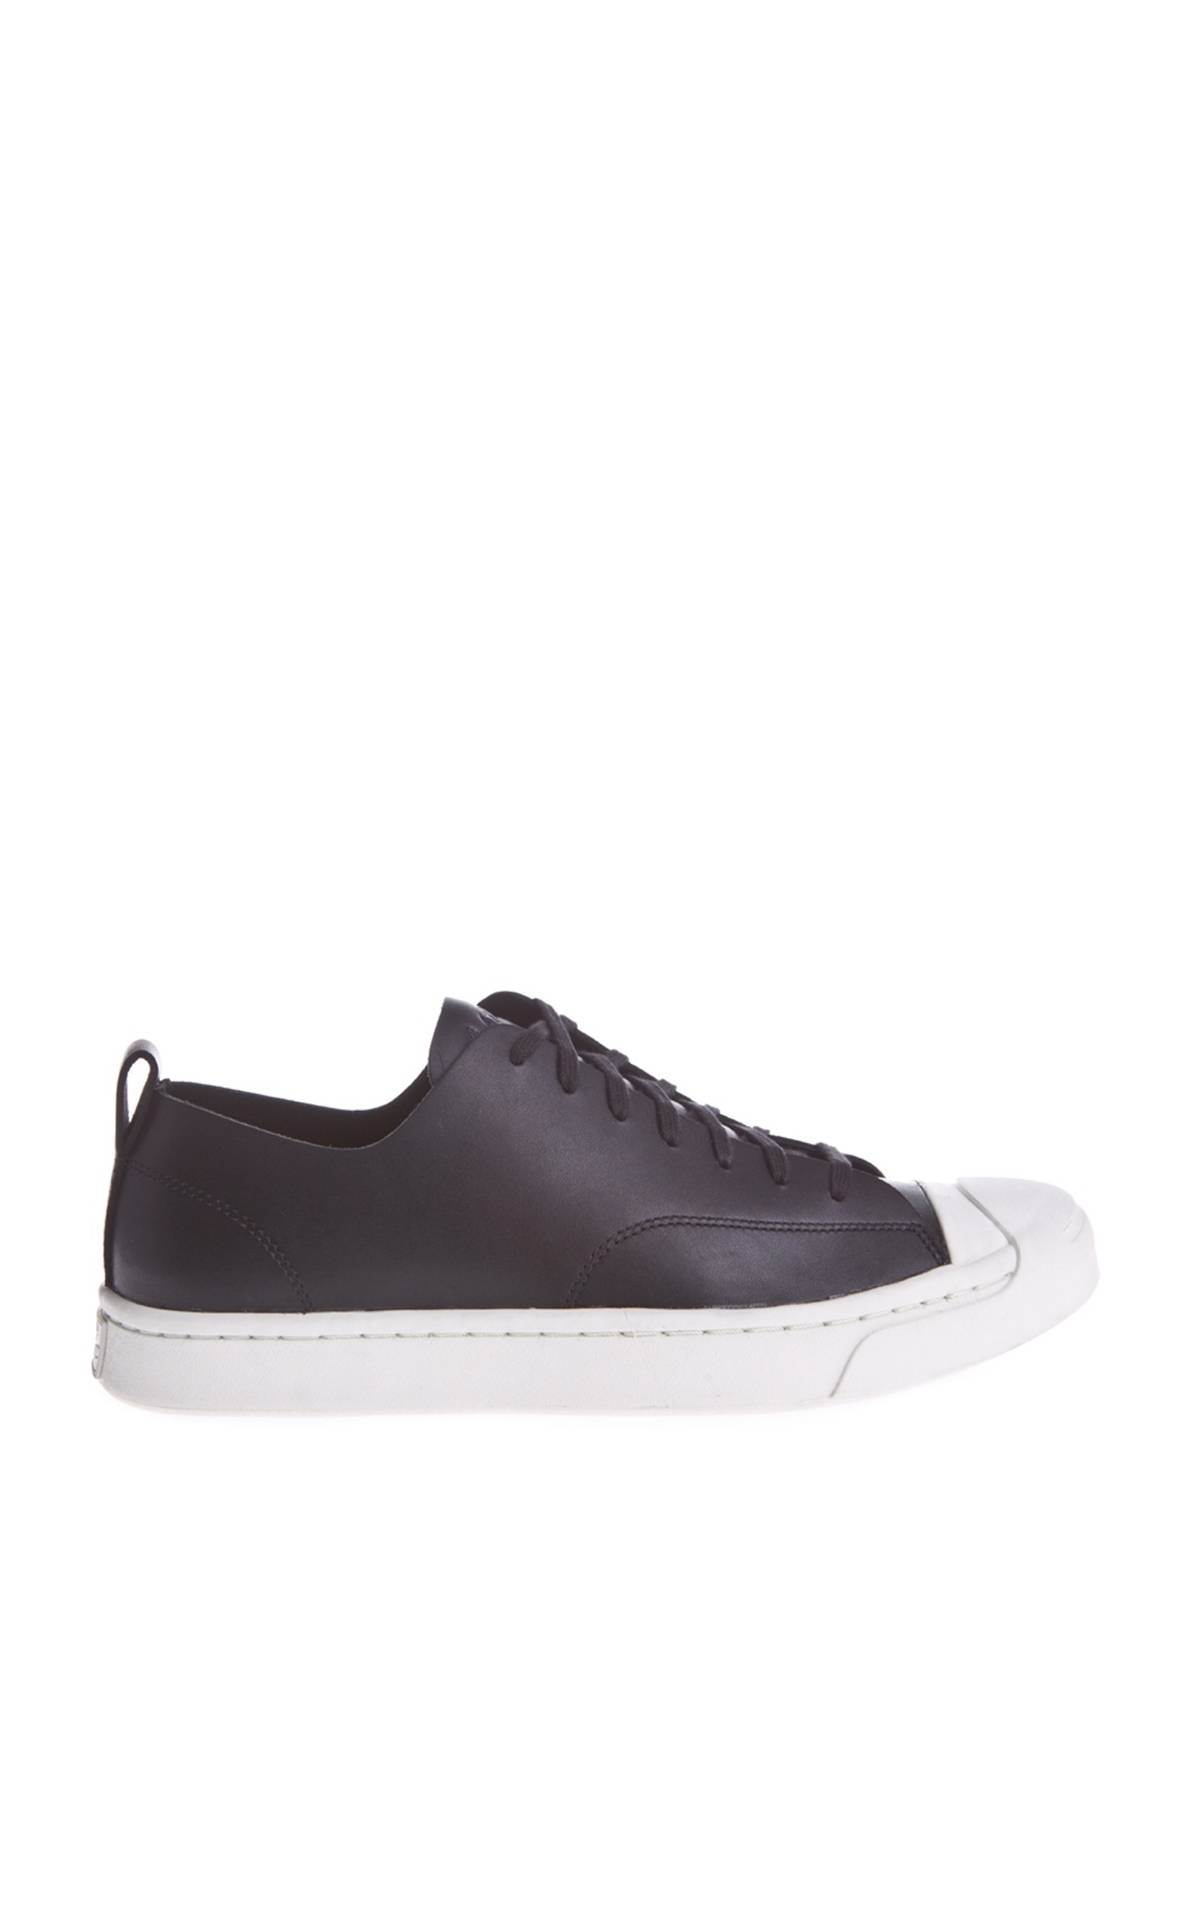 914207d1690b Converse Converse Jack Purcell M-Series OX Leather Black Size 10 ...